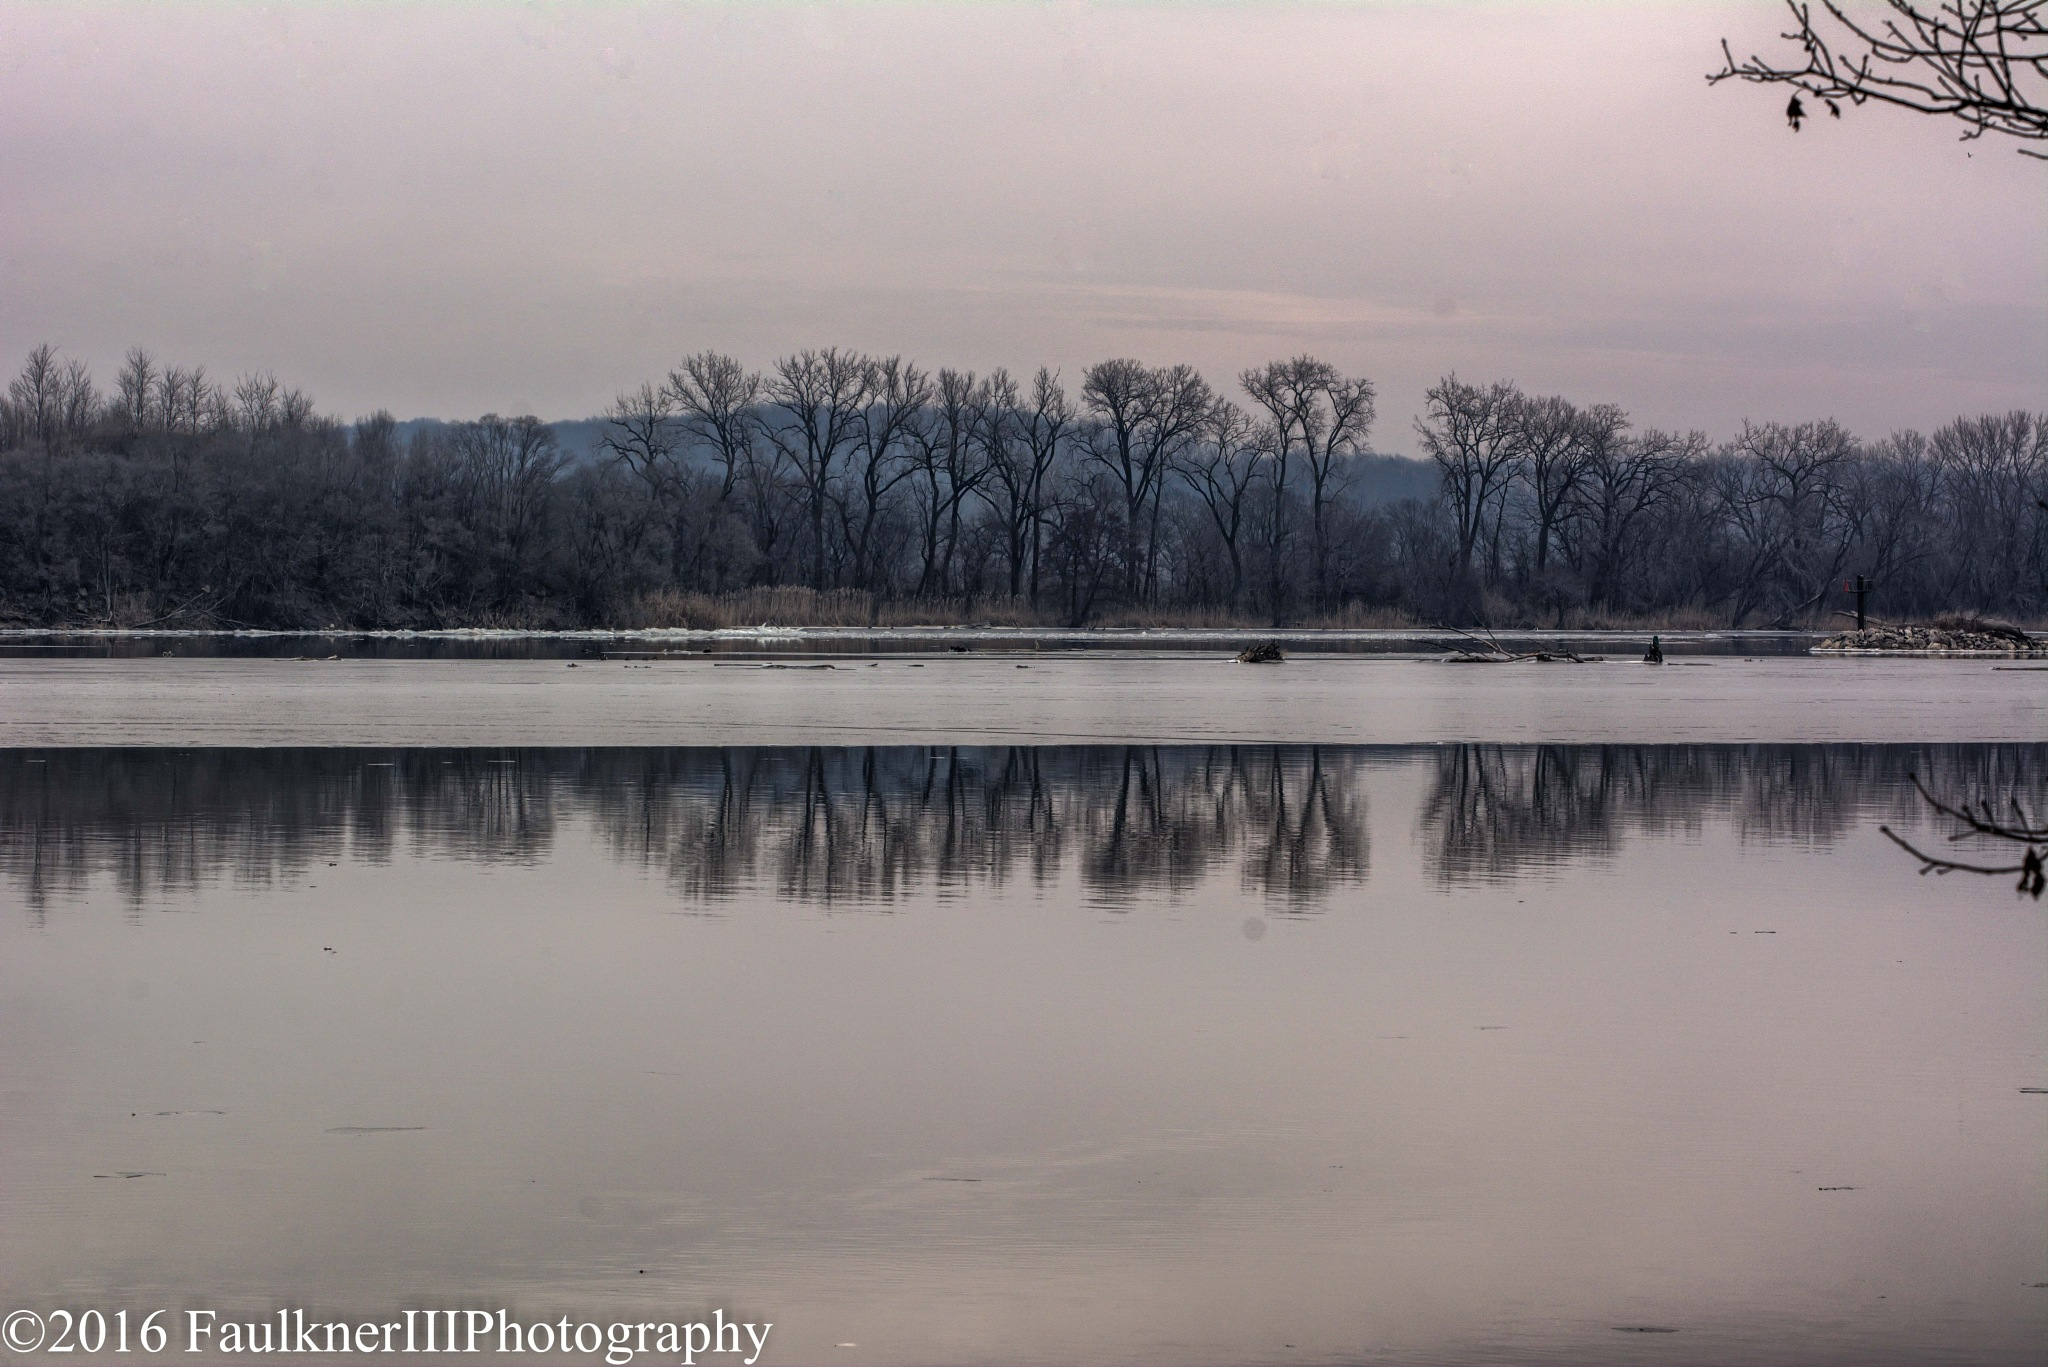 Illinois River by Frederick Faulkner III